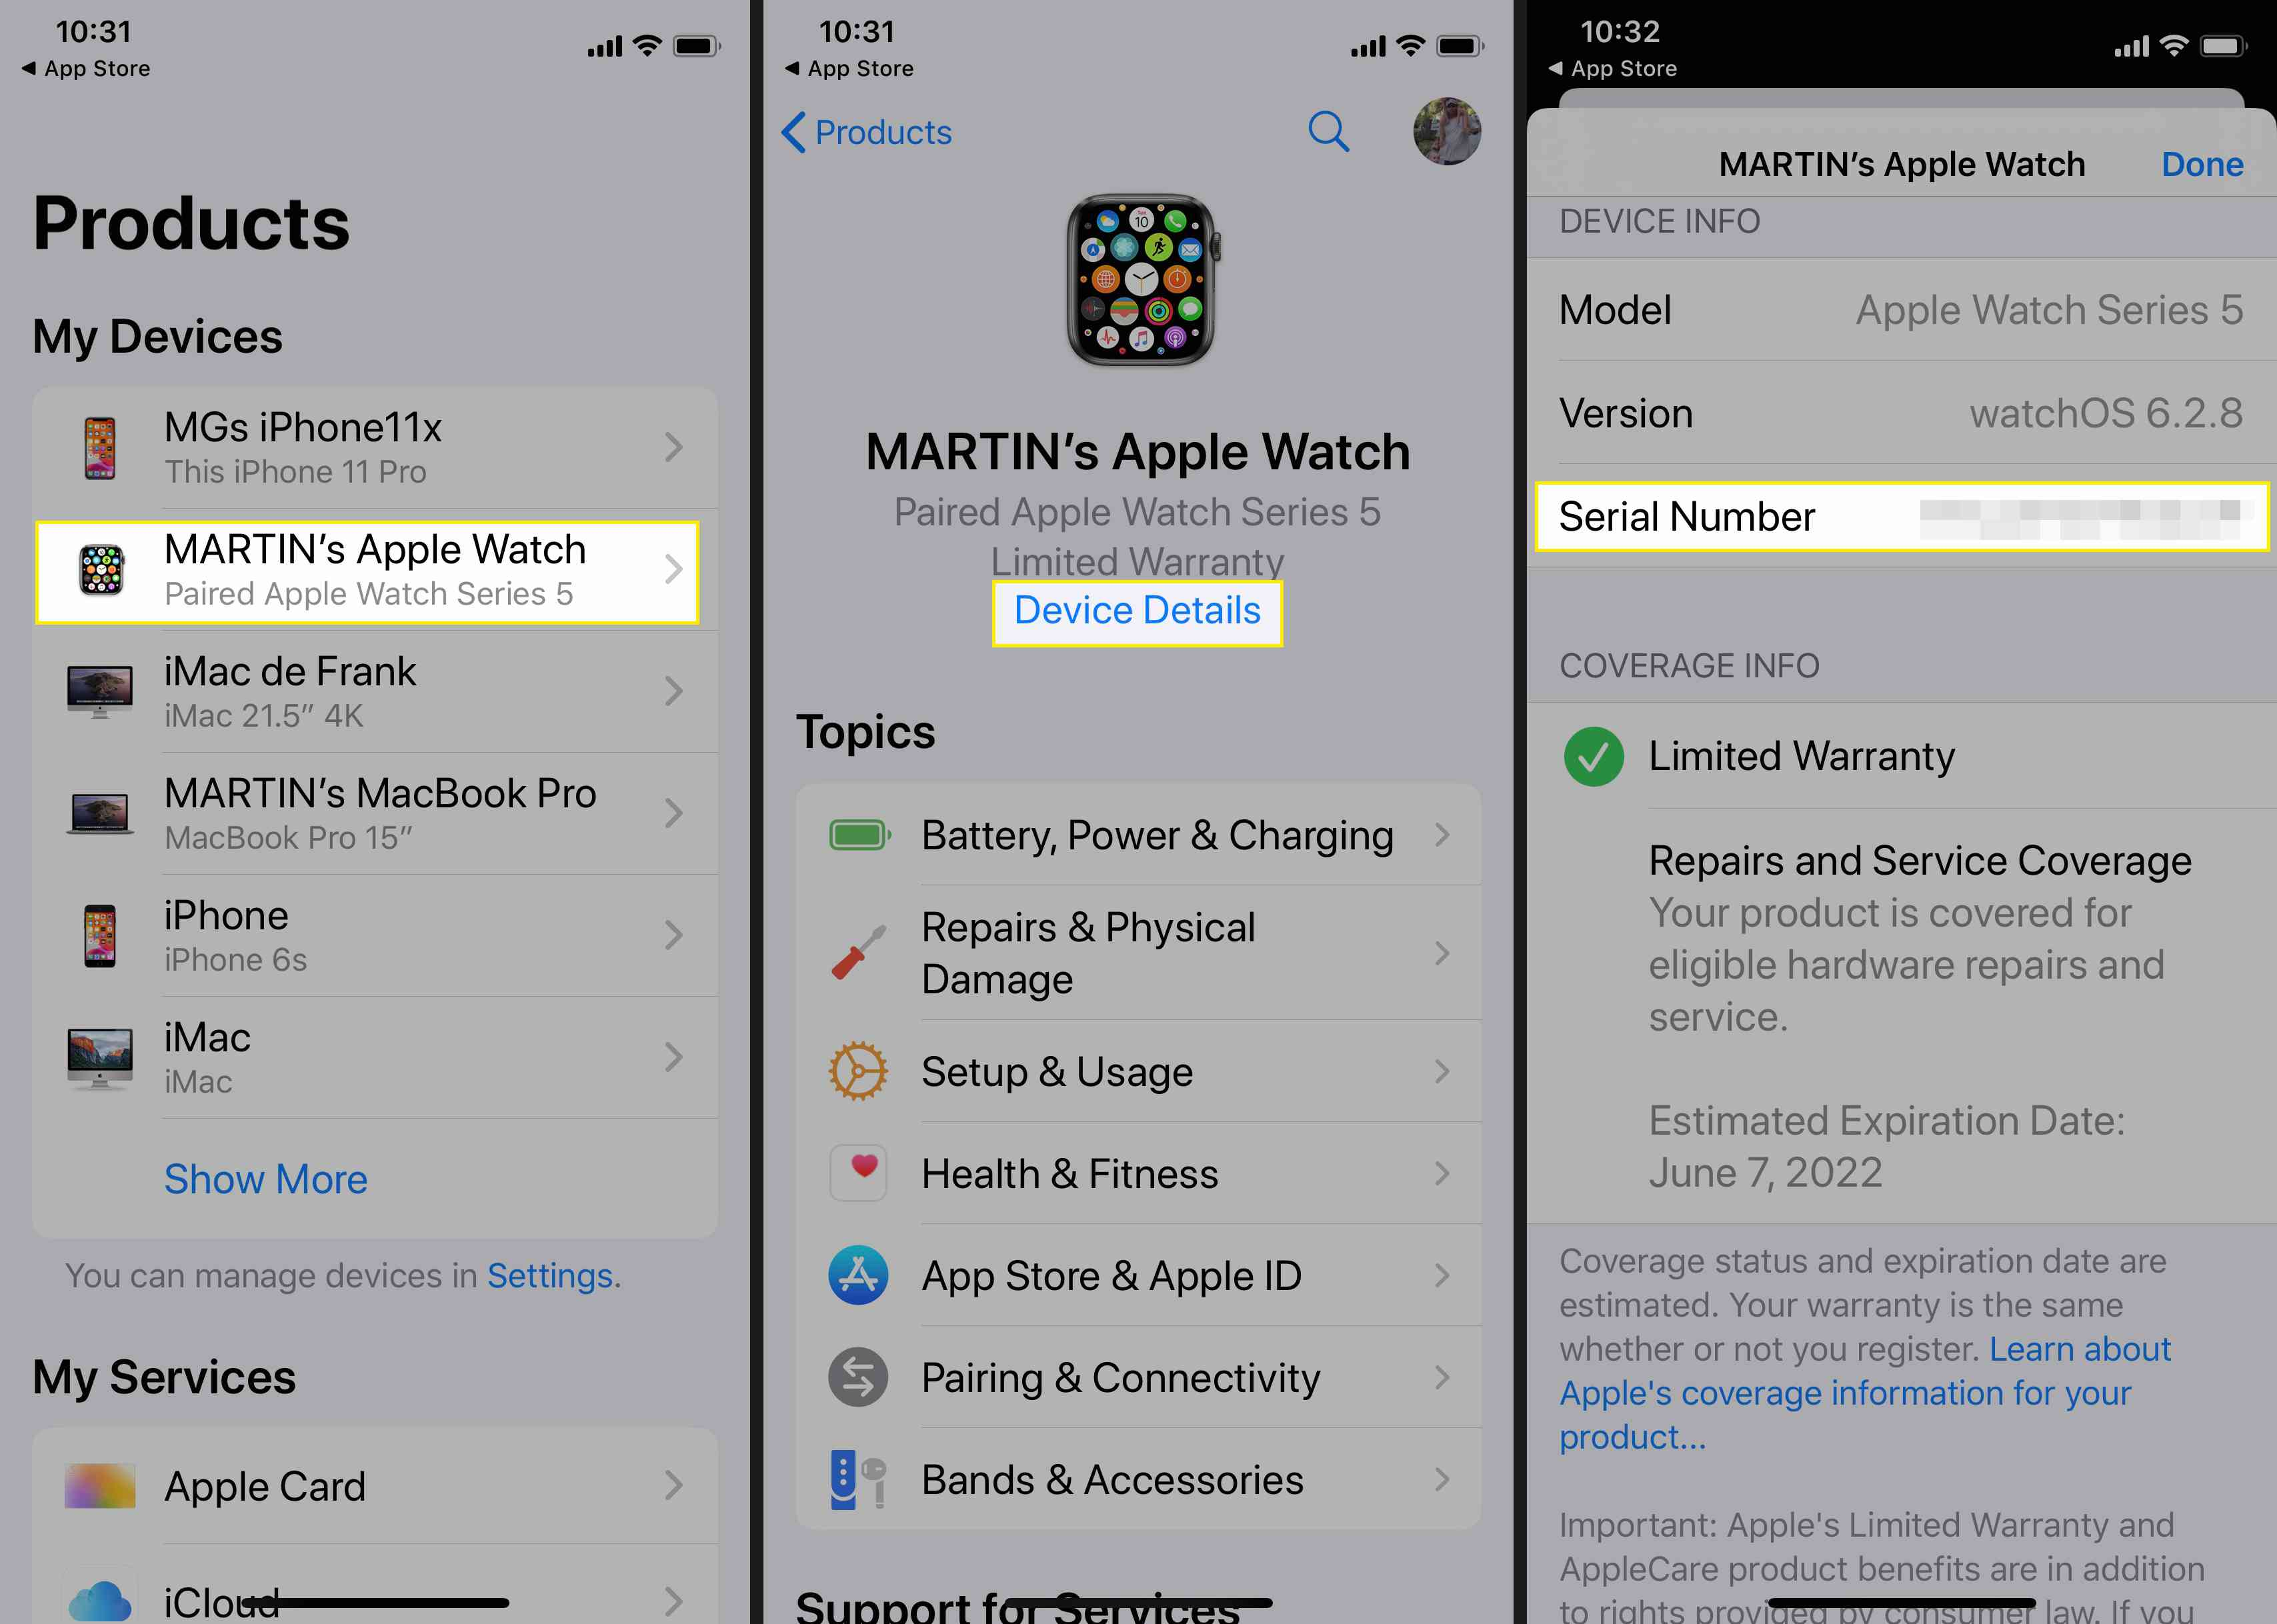 Use the Apple Support app to locate your Apple Watch serial number